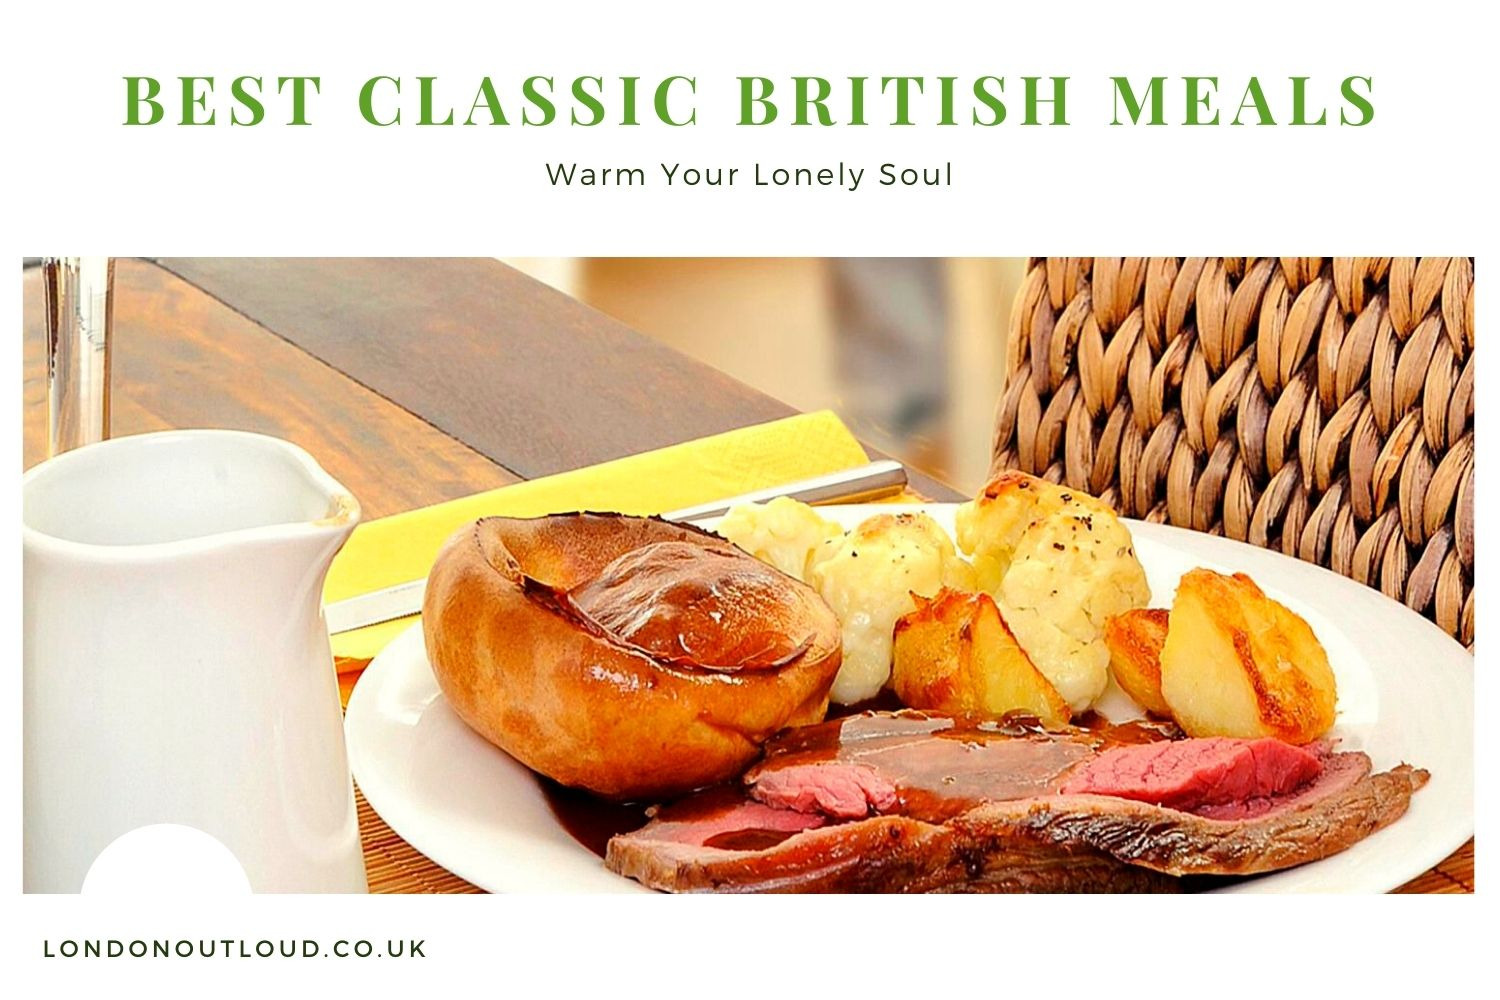 Best Classic British Meals To Warm Your Lonely Soul - Londonoutloud.co.uk